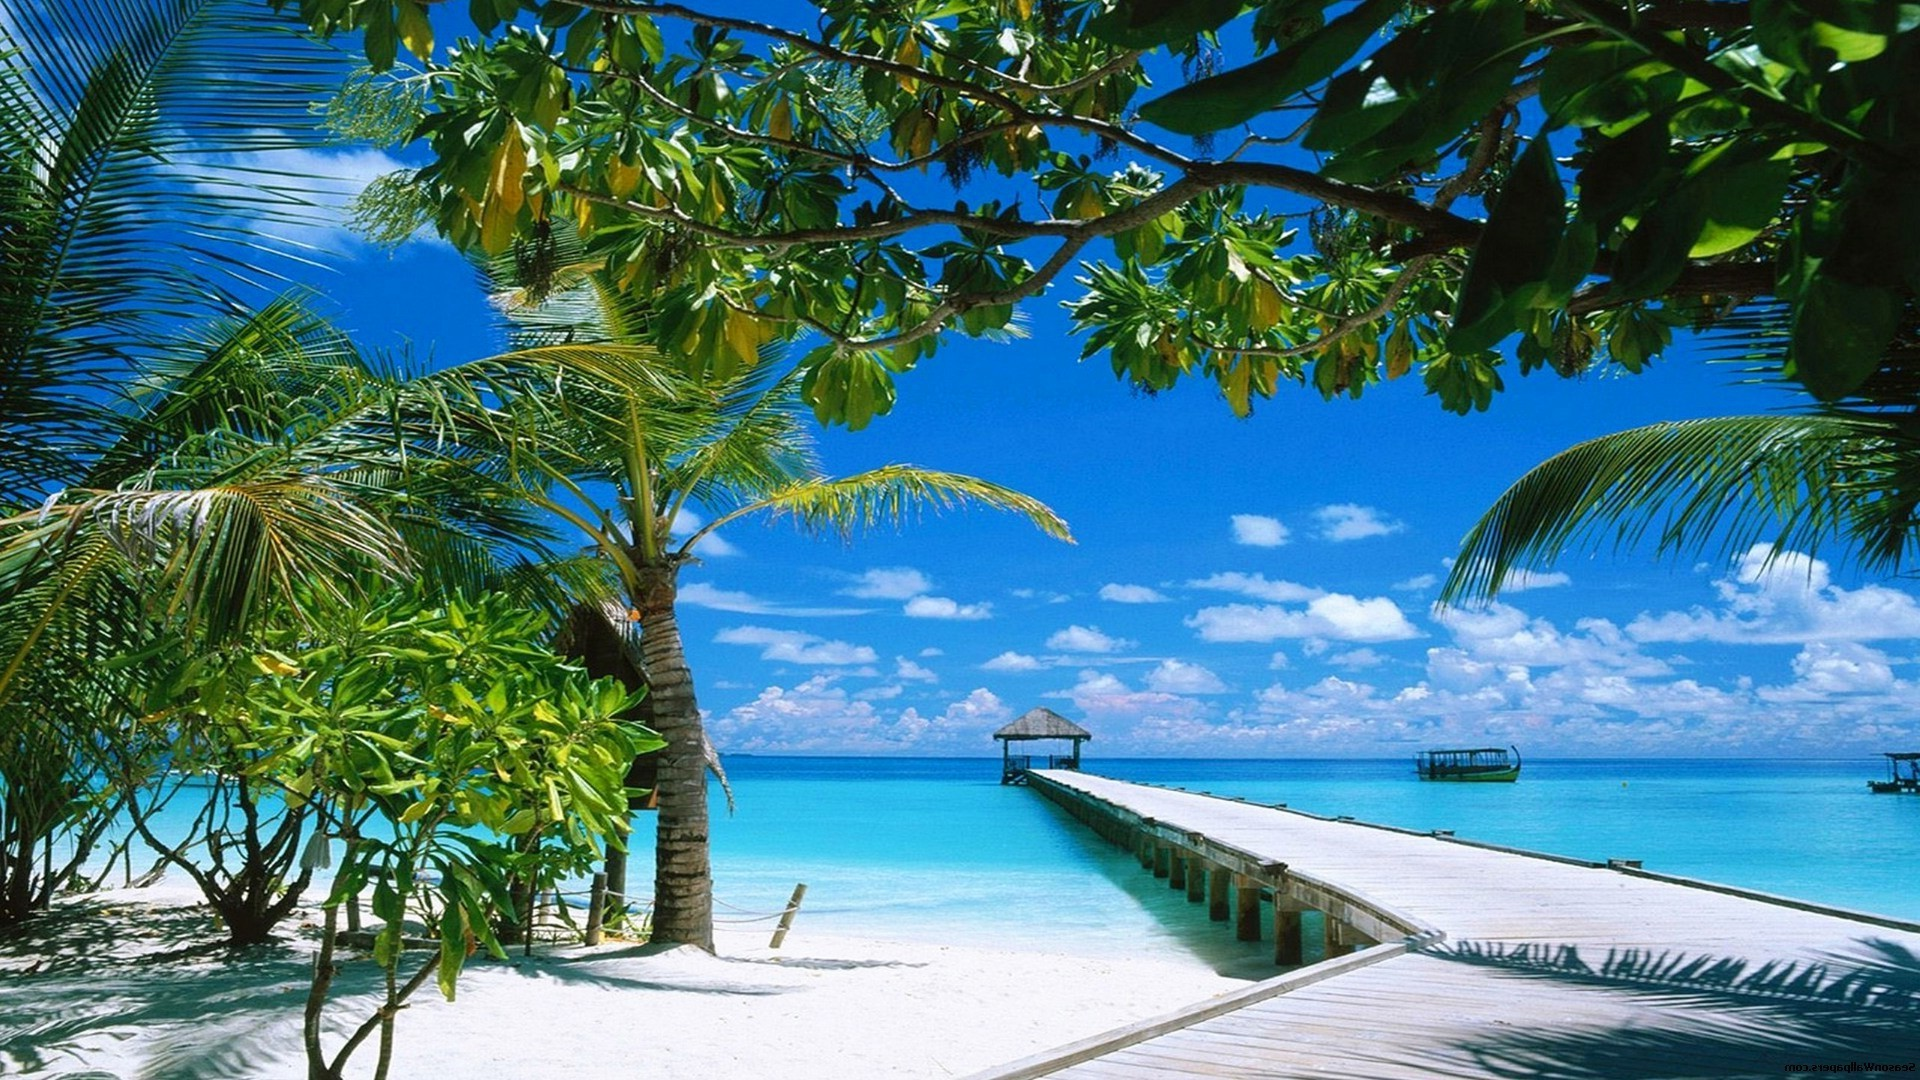 An Island Paradise With White Sand Android Wallpapers For Free